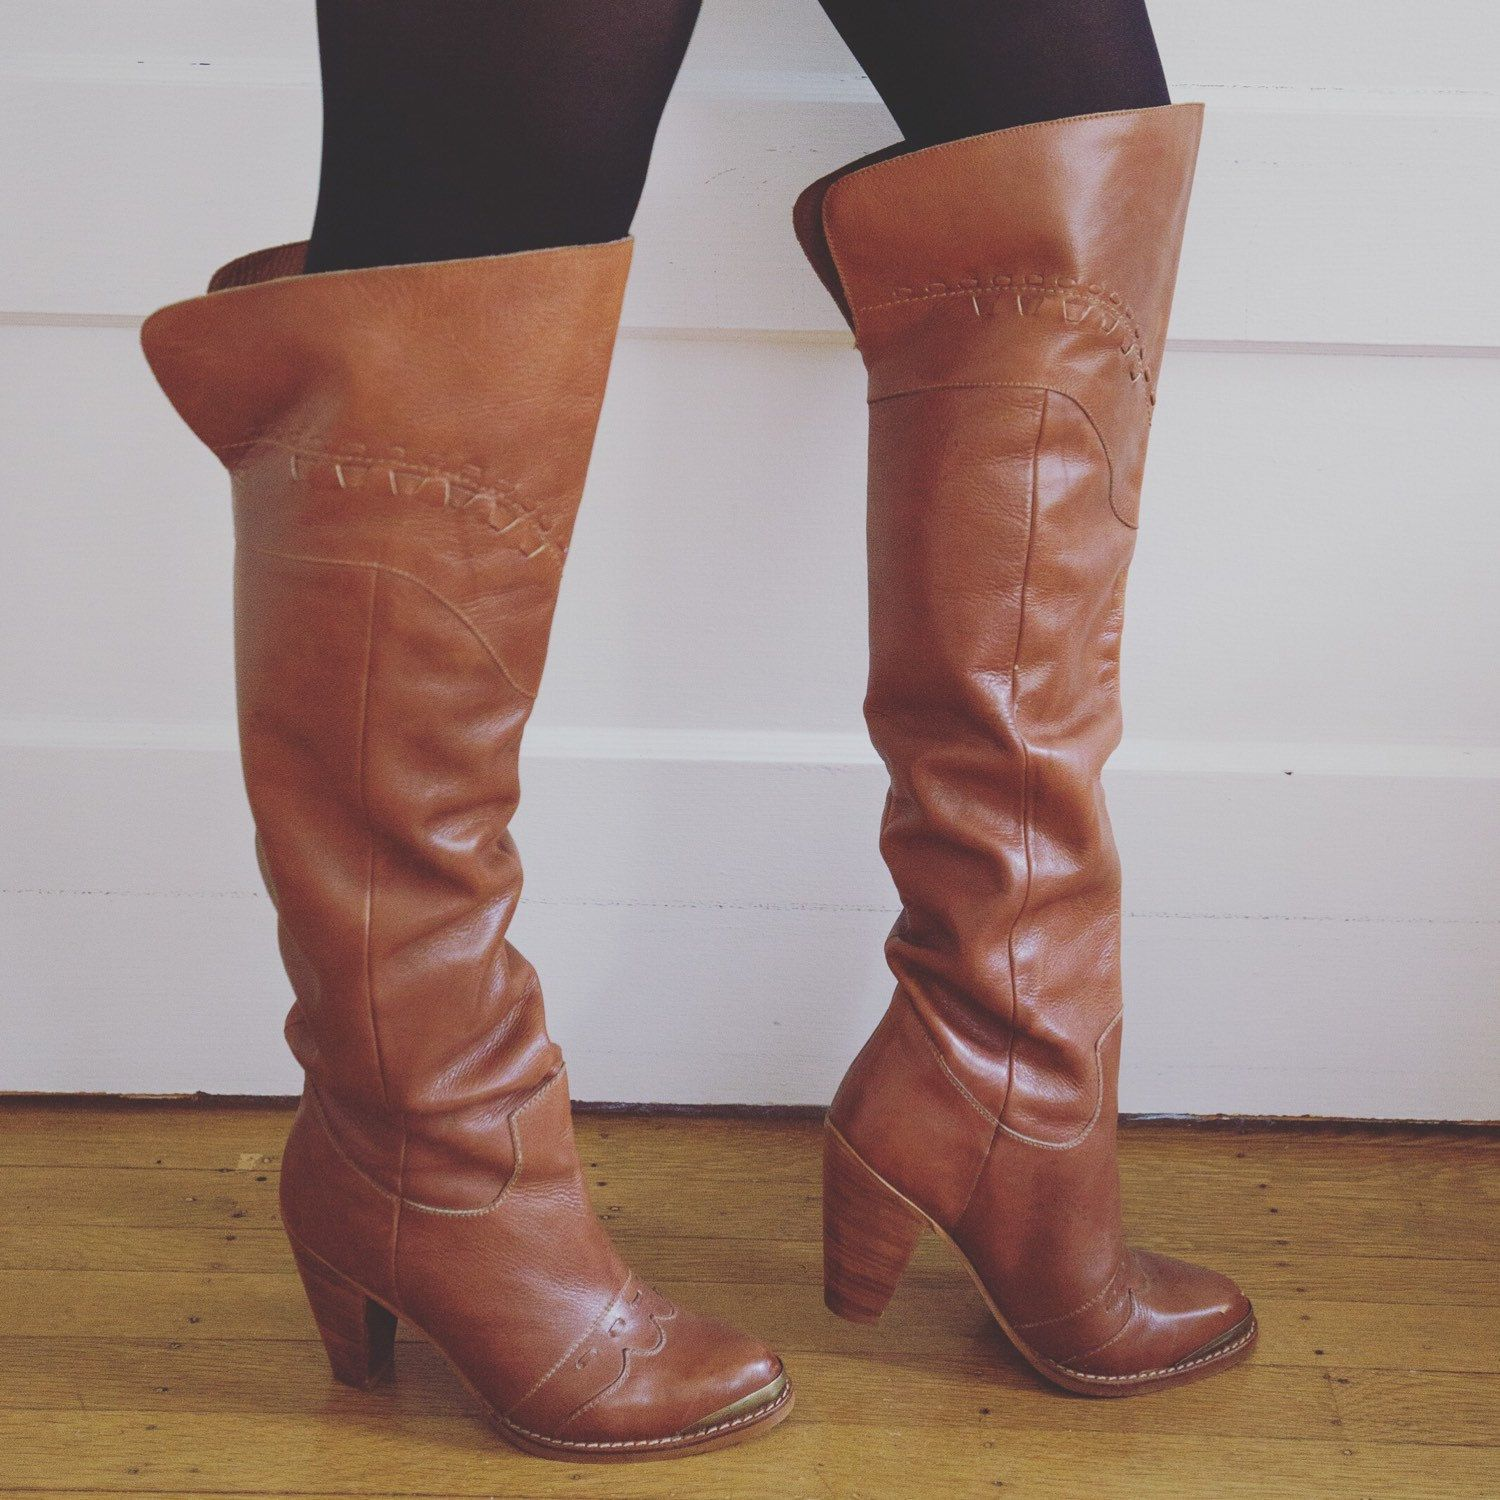 New amazing boots just added to etsy! Including these 70's Brazilian Leather Over The Knee Boots